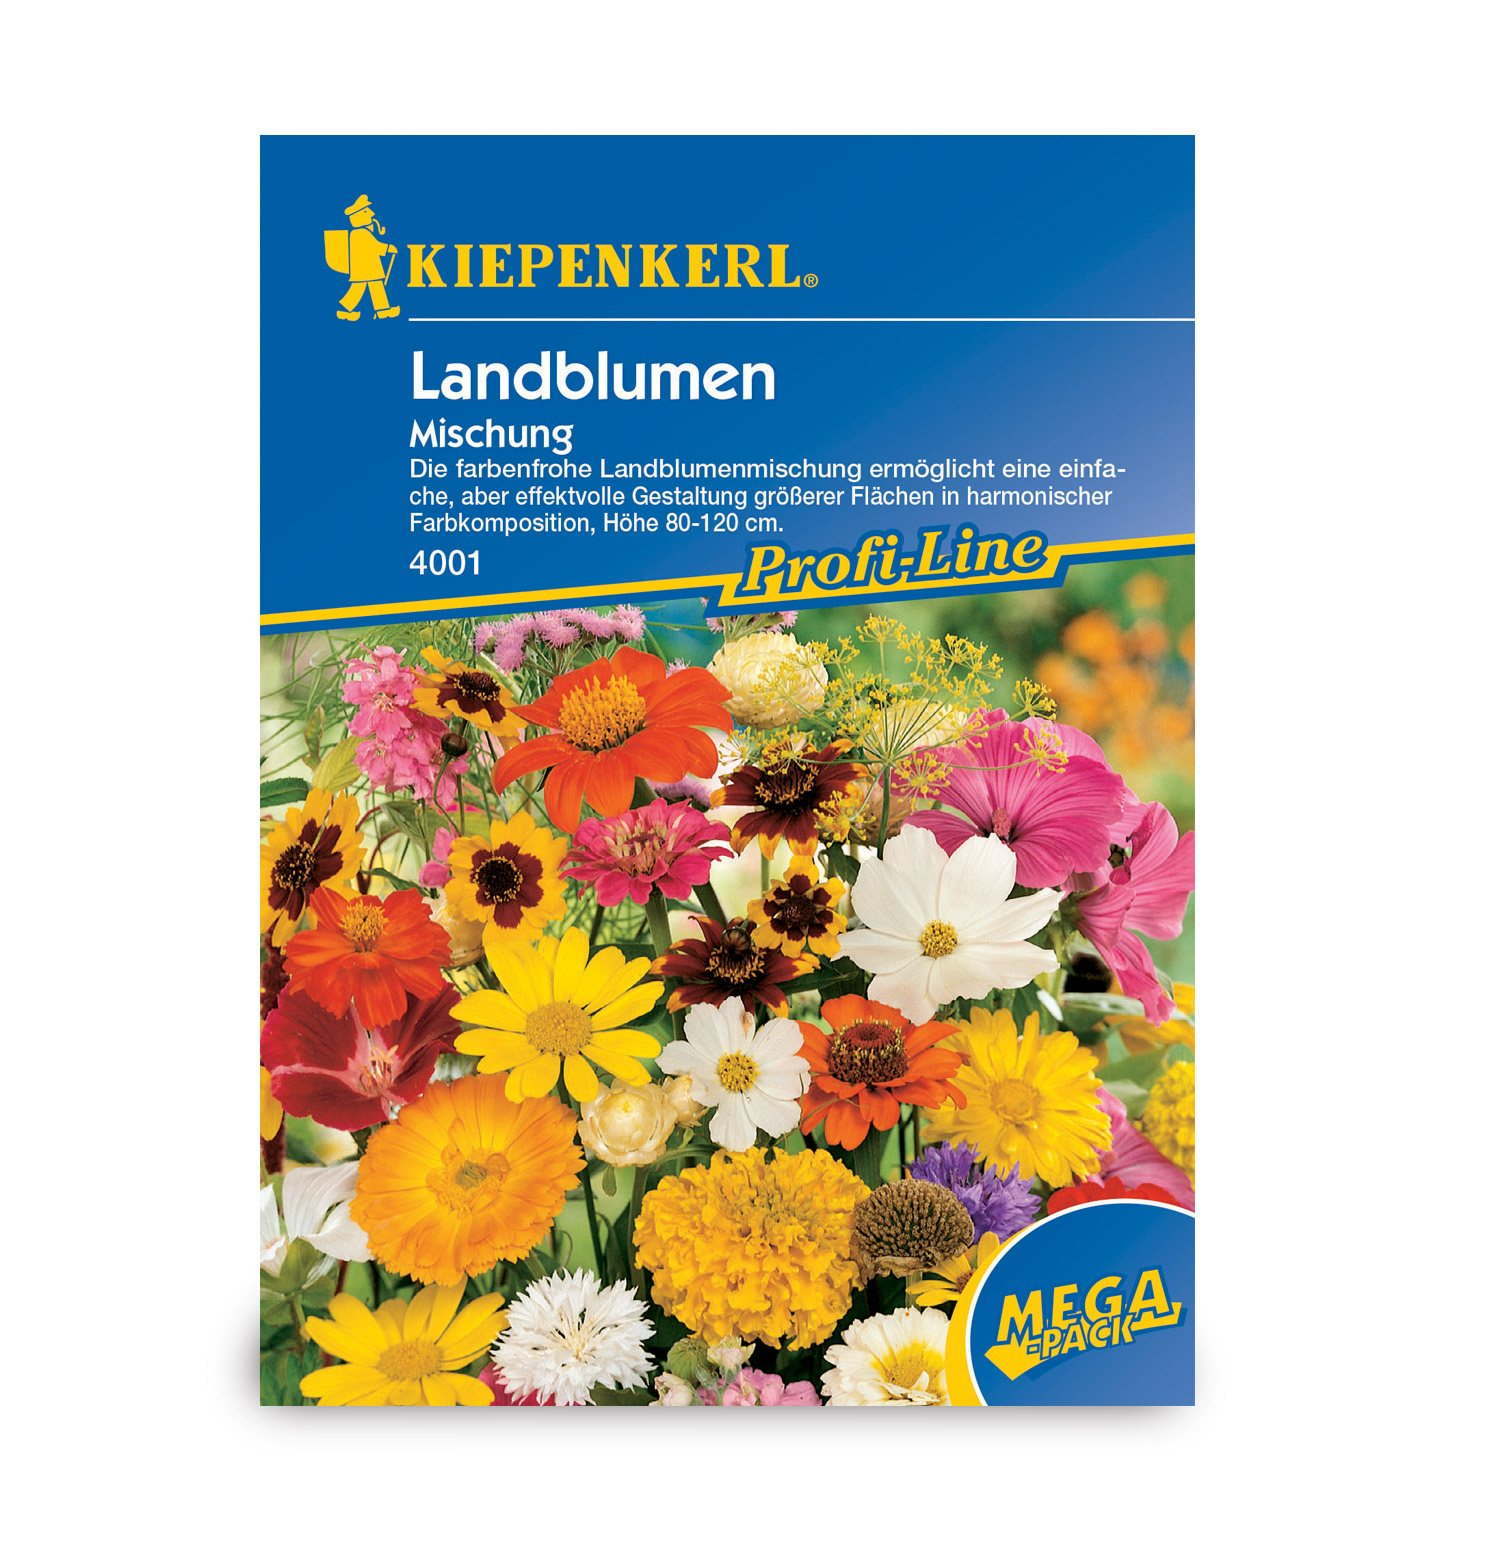 Image of Blomsterblanding - Blomster idyl 25 m2